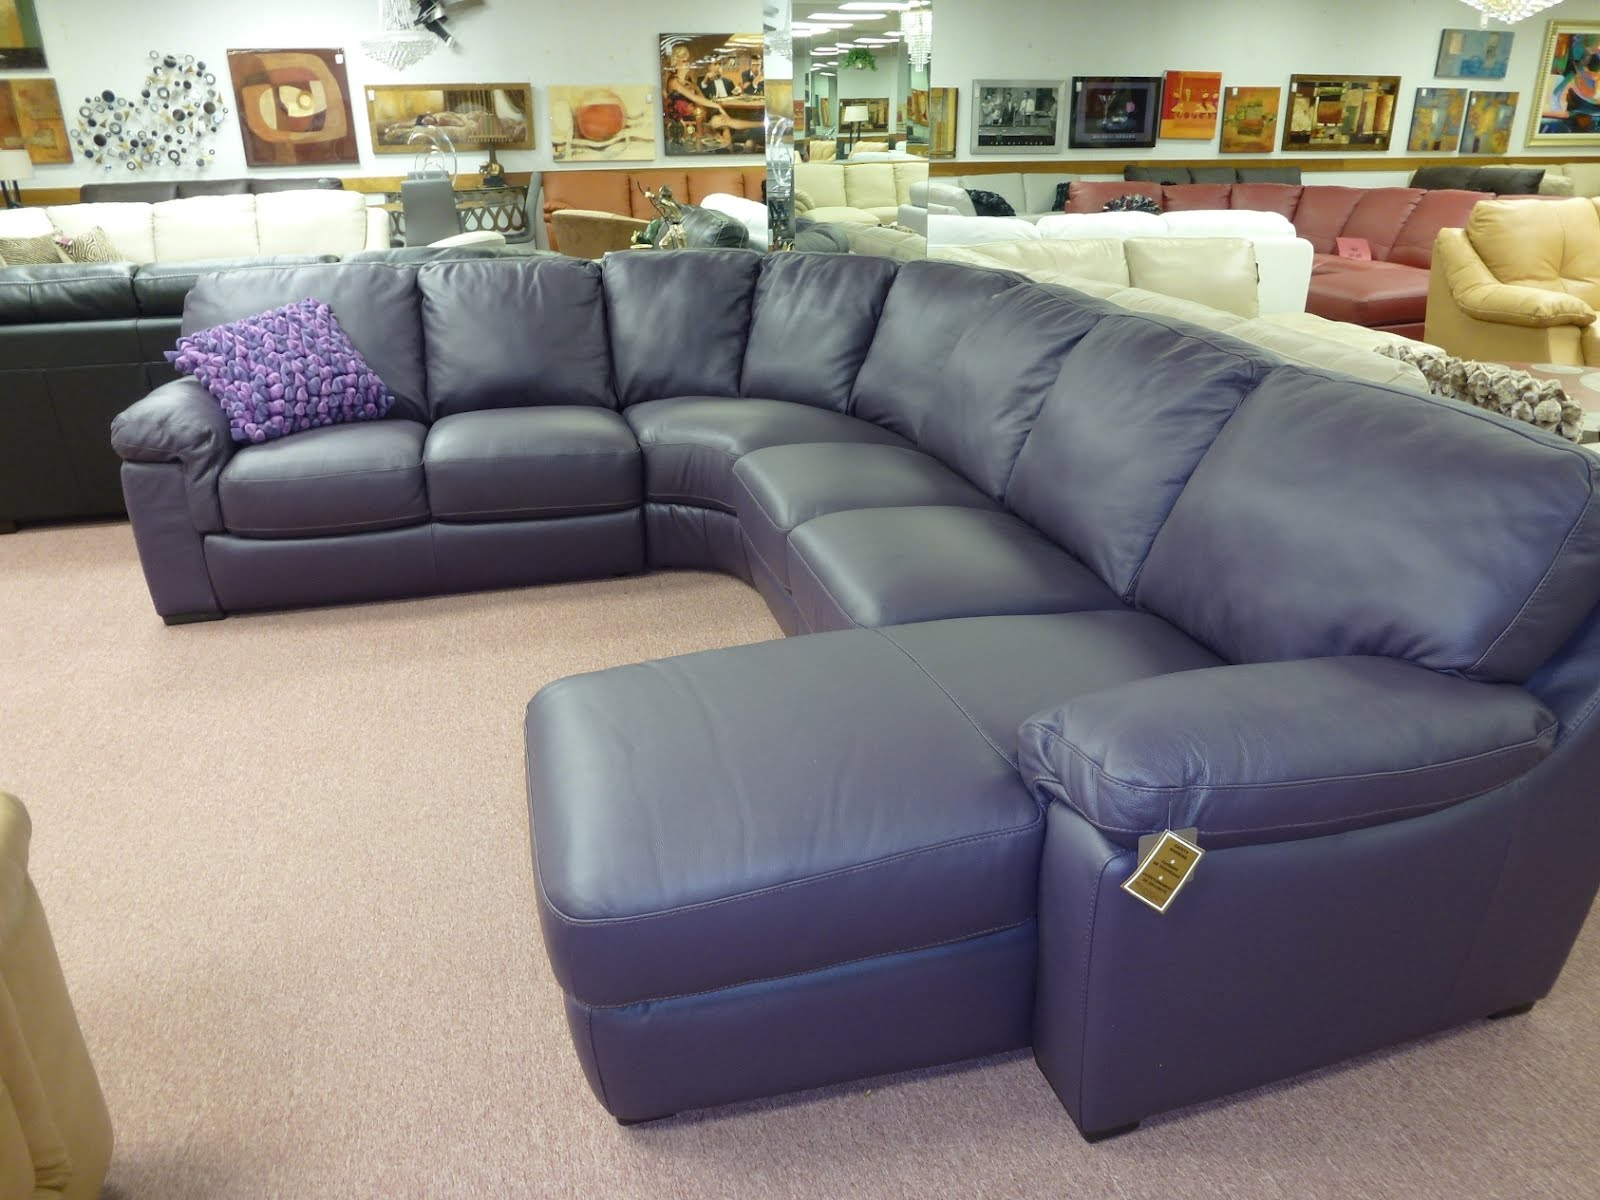 Sofa Mart Labor Day Sale Small Sofas For Rooms Uk Natuzzi Leather And Sectionals By Interior Concepts